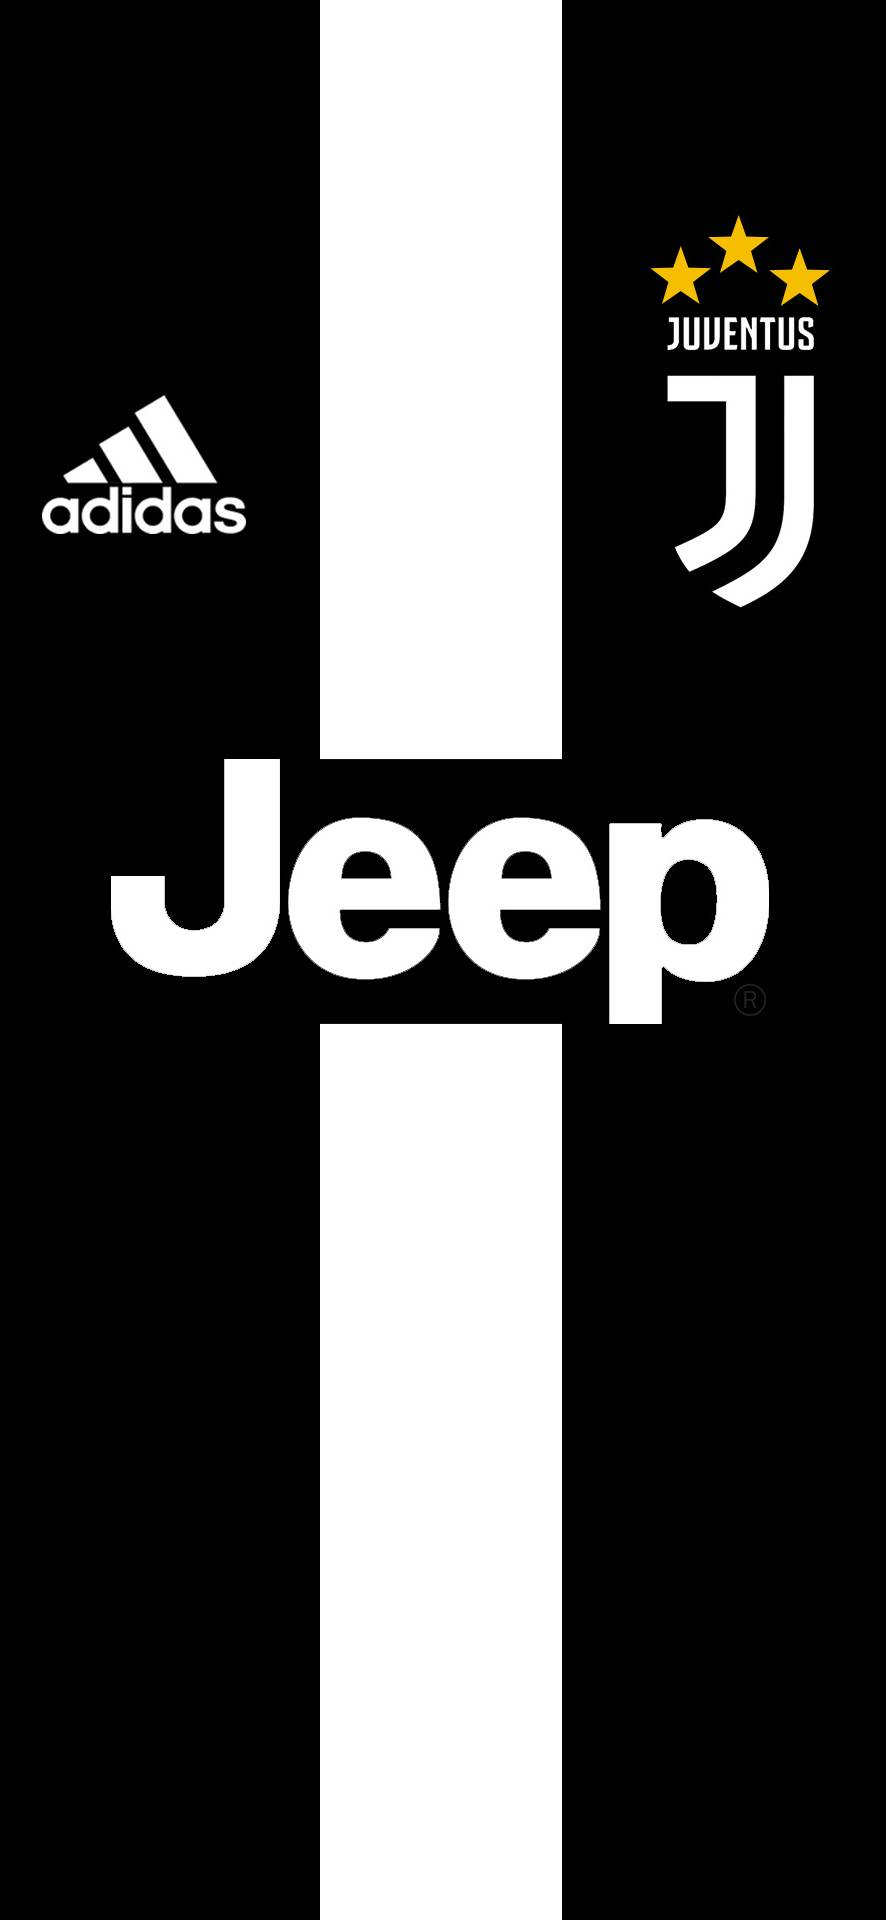 Juventus Hd Wallpapers Posted By Zoey Mercado